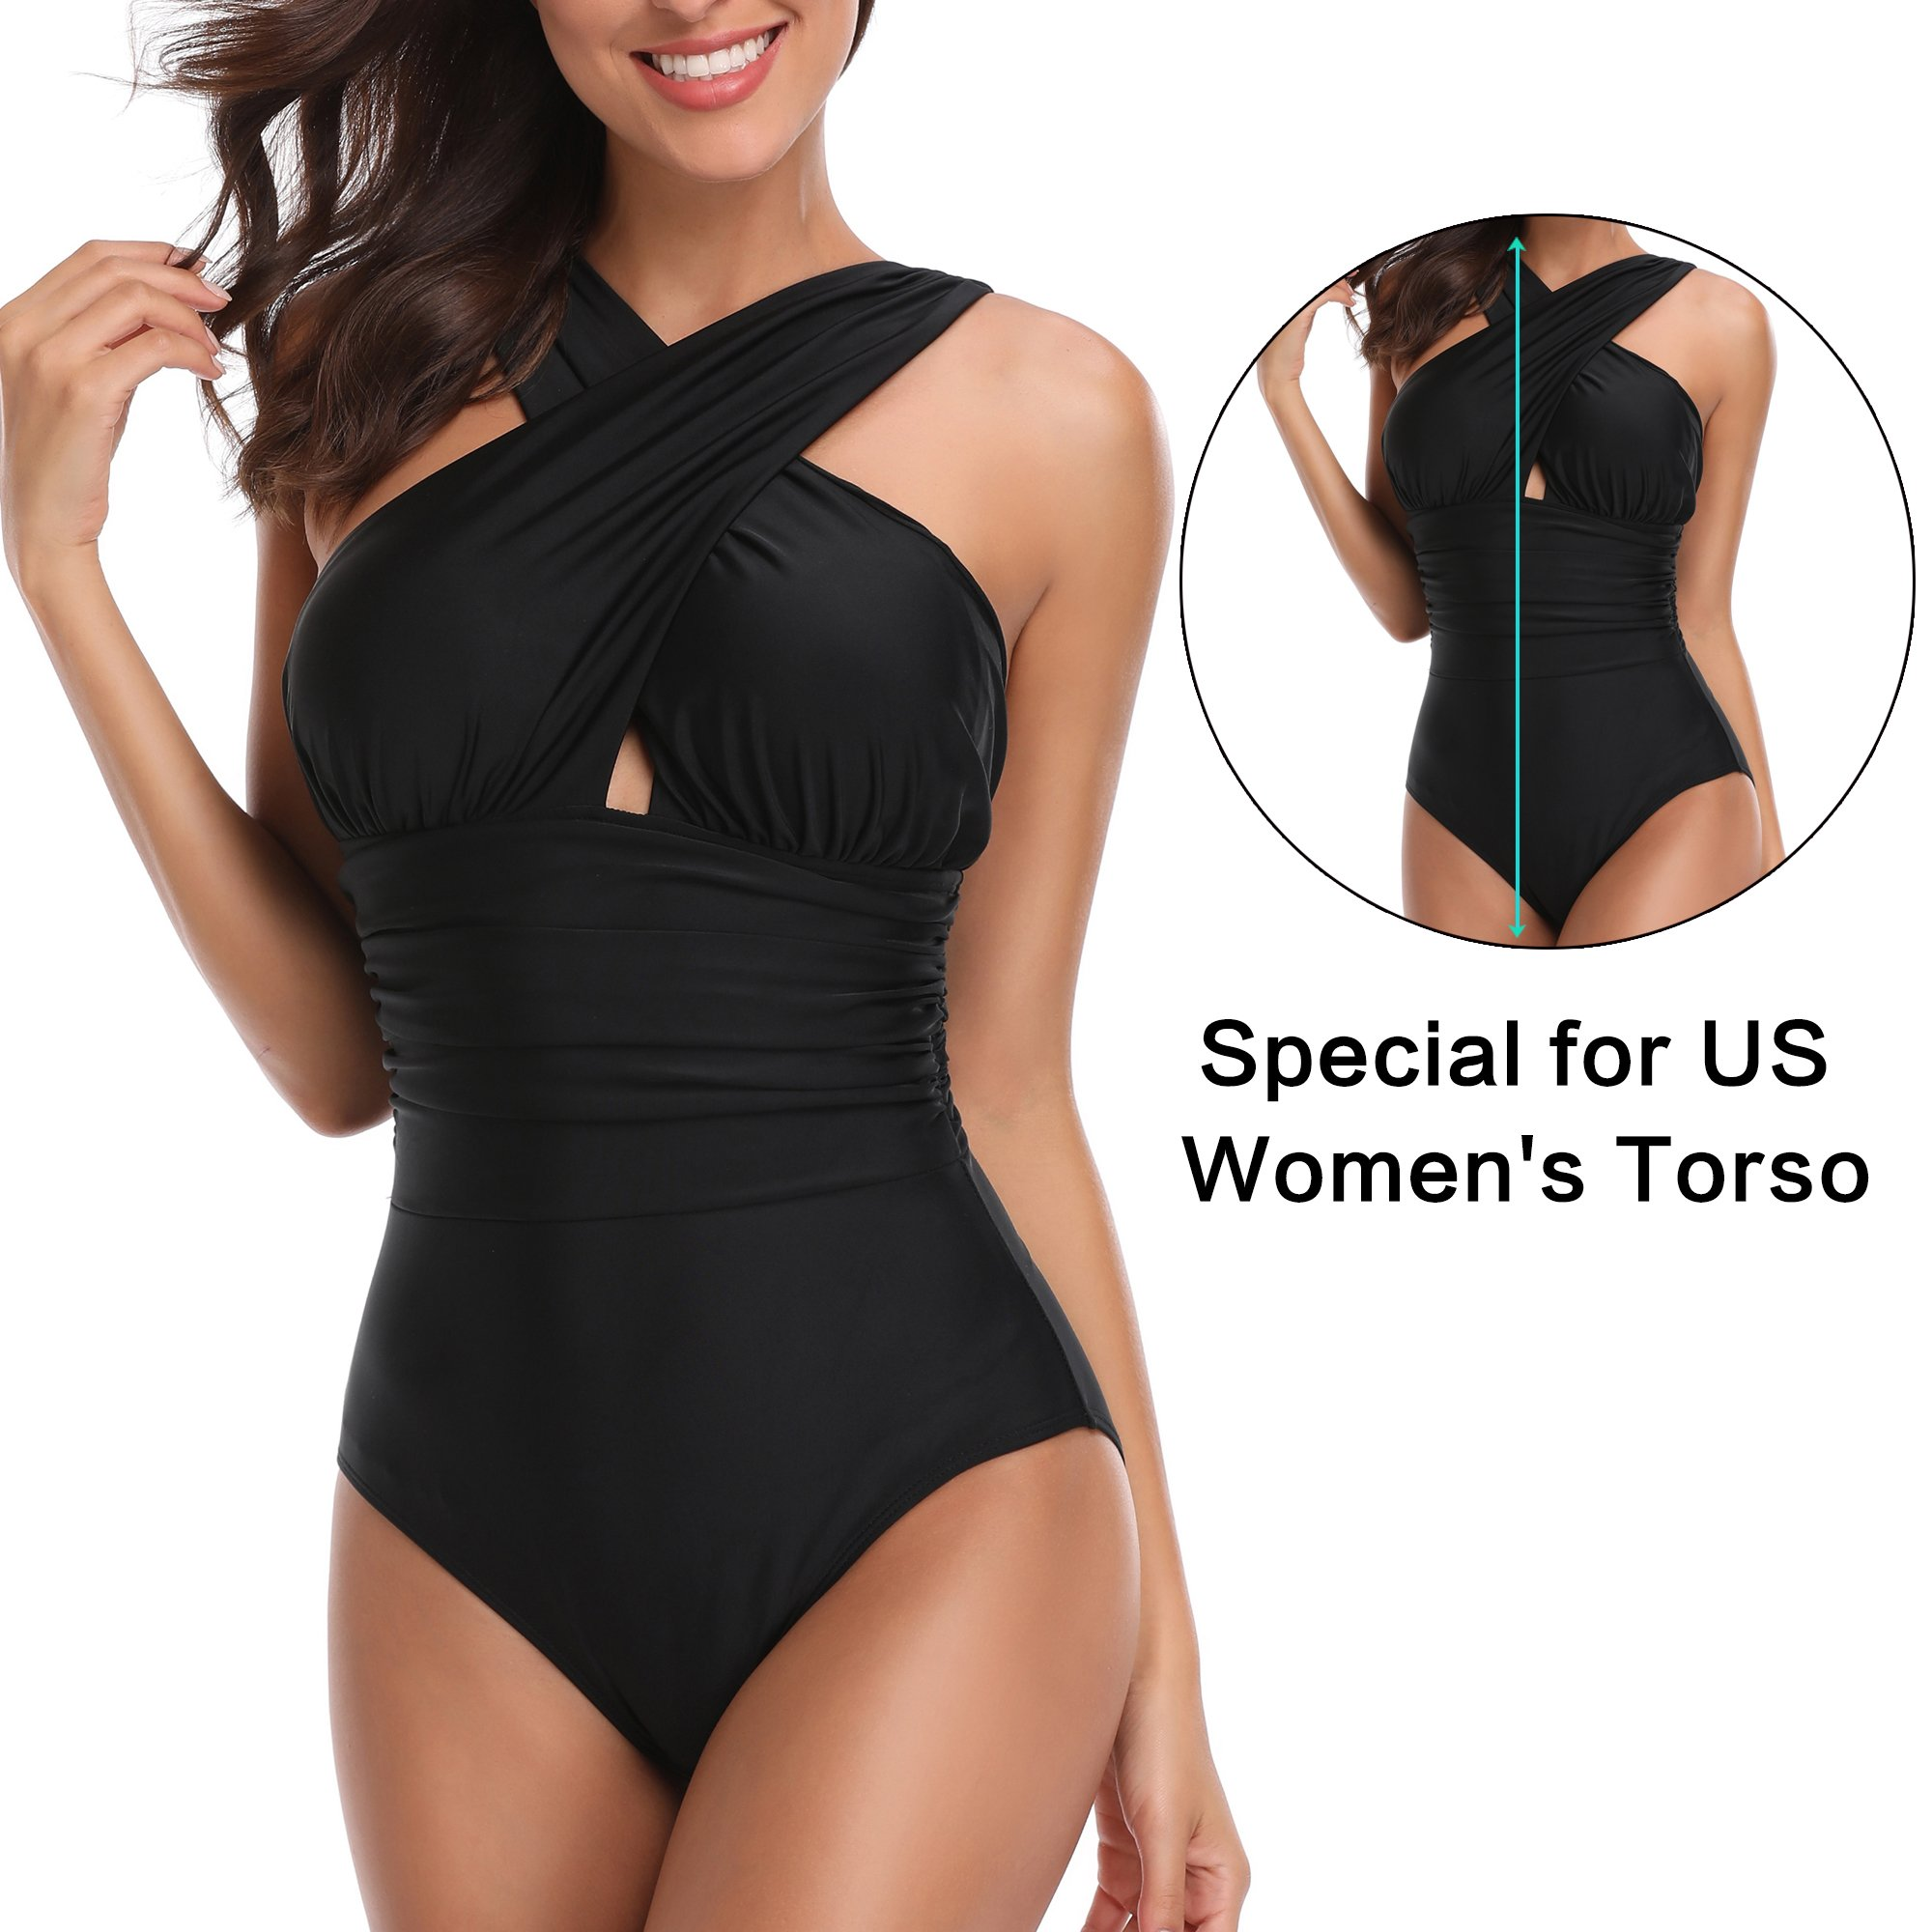 W YOU DI AN Women's One Piece Cross Ruffled Backless Full Coverage Swimsuit Bathing Suit Beachwear(Black, L) by W YOU DI AN (Image #4)